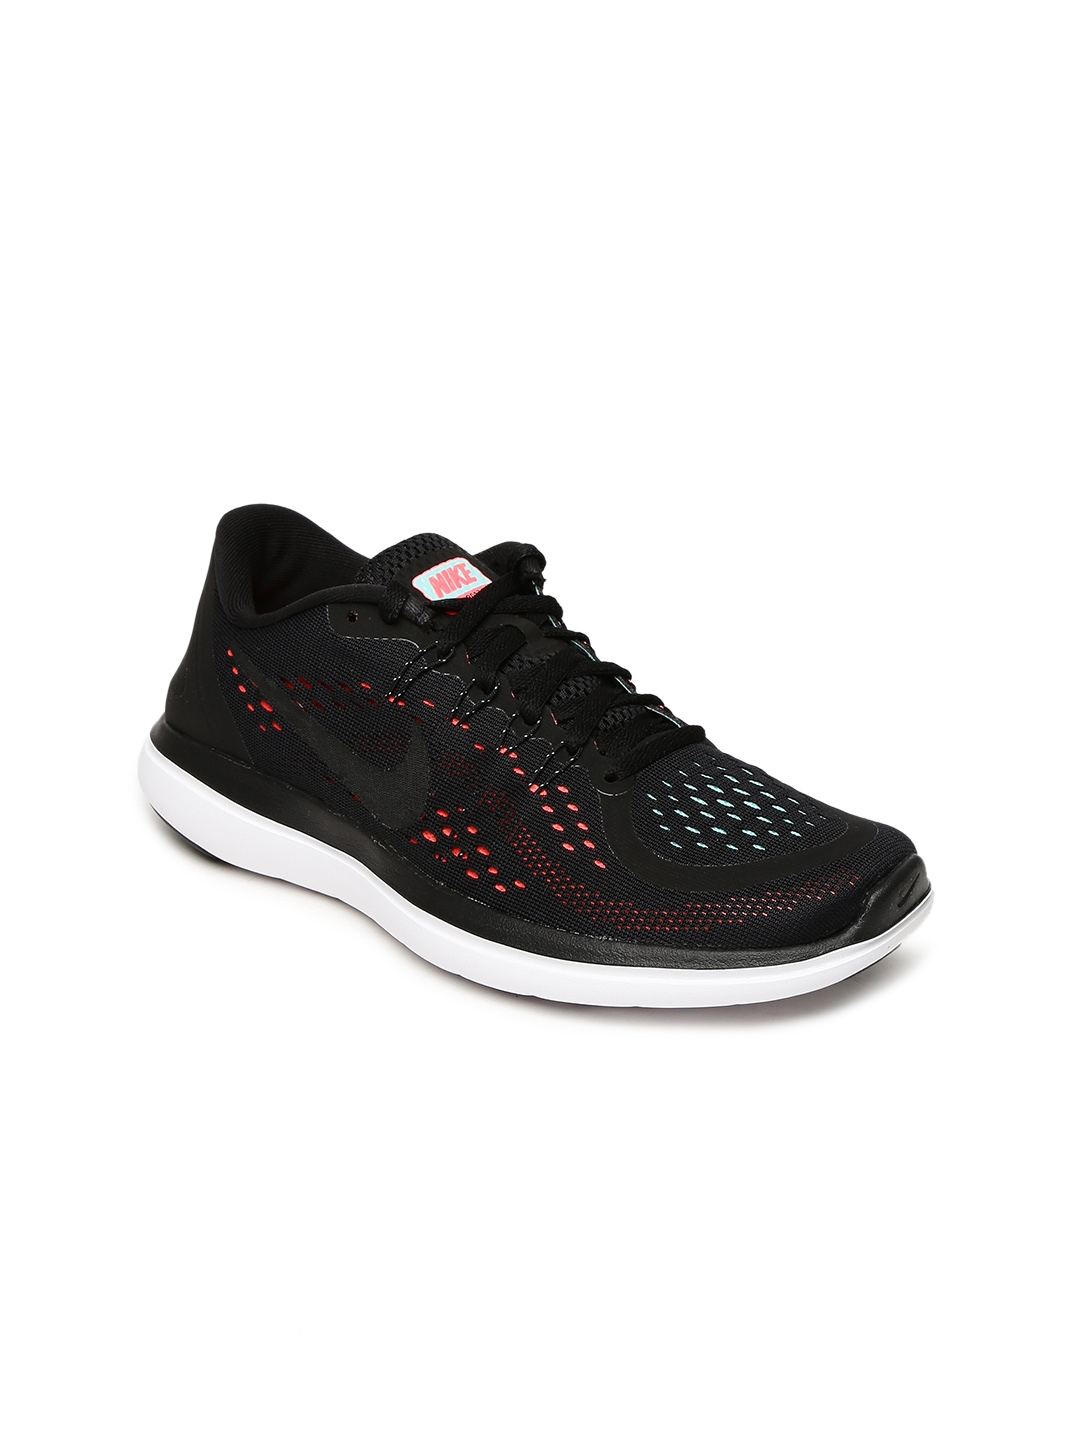 d7e5683717a Buy Nike Women Black FLEX 2017 RN Running Shoes - Sports Shoes for ...